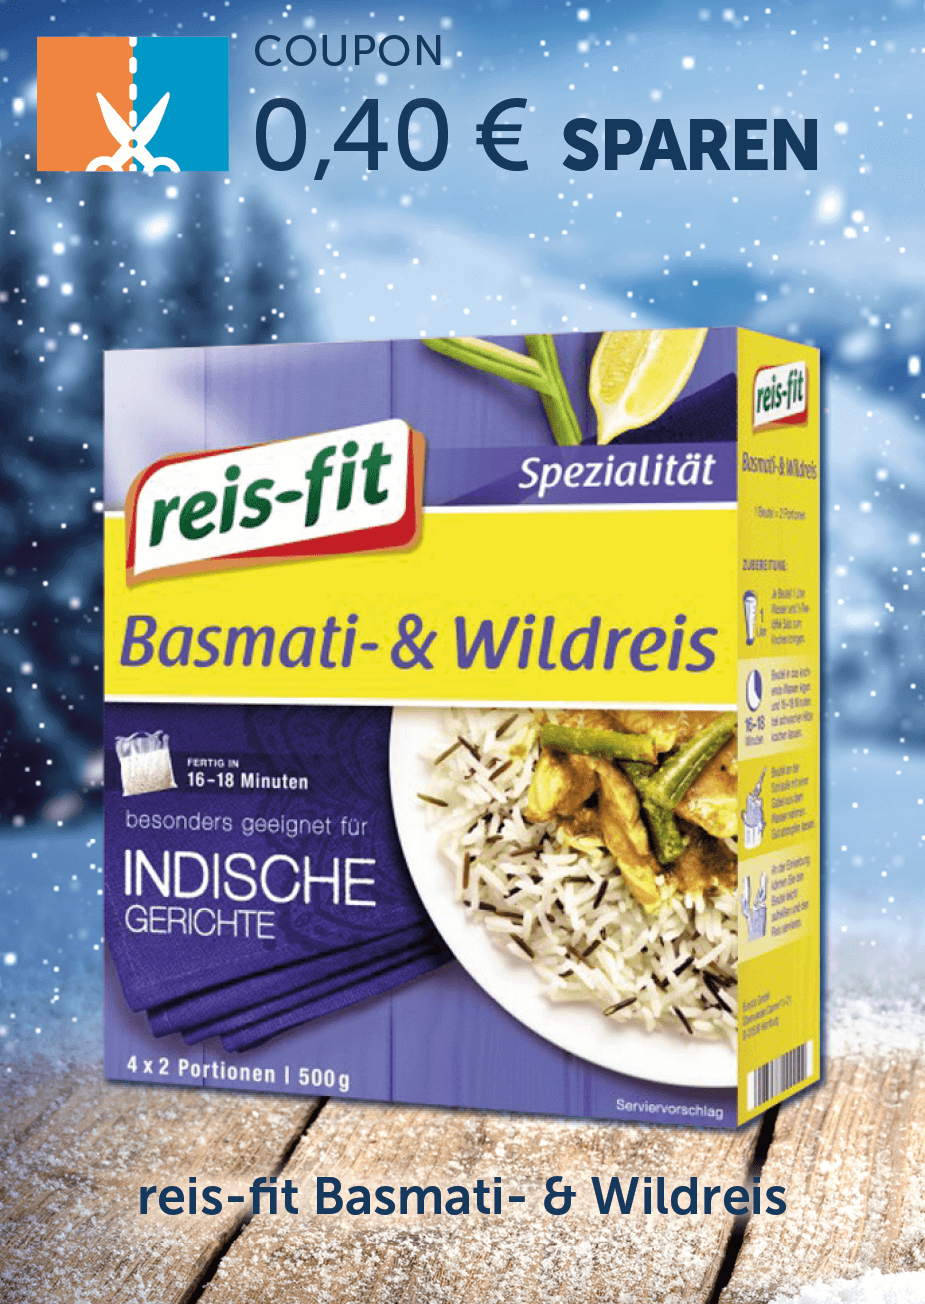 reis-fit Coupon